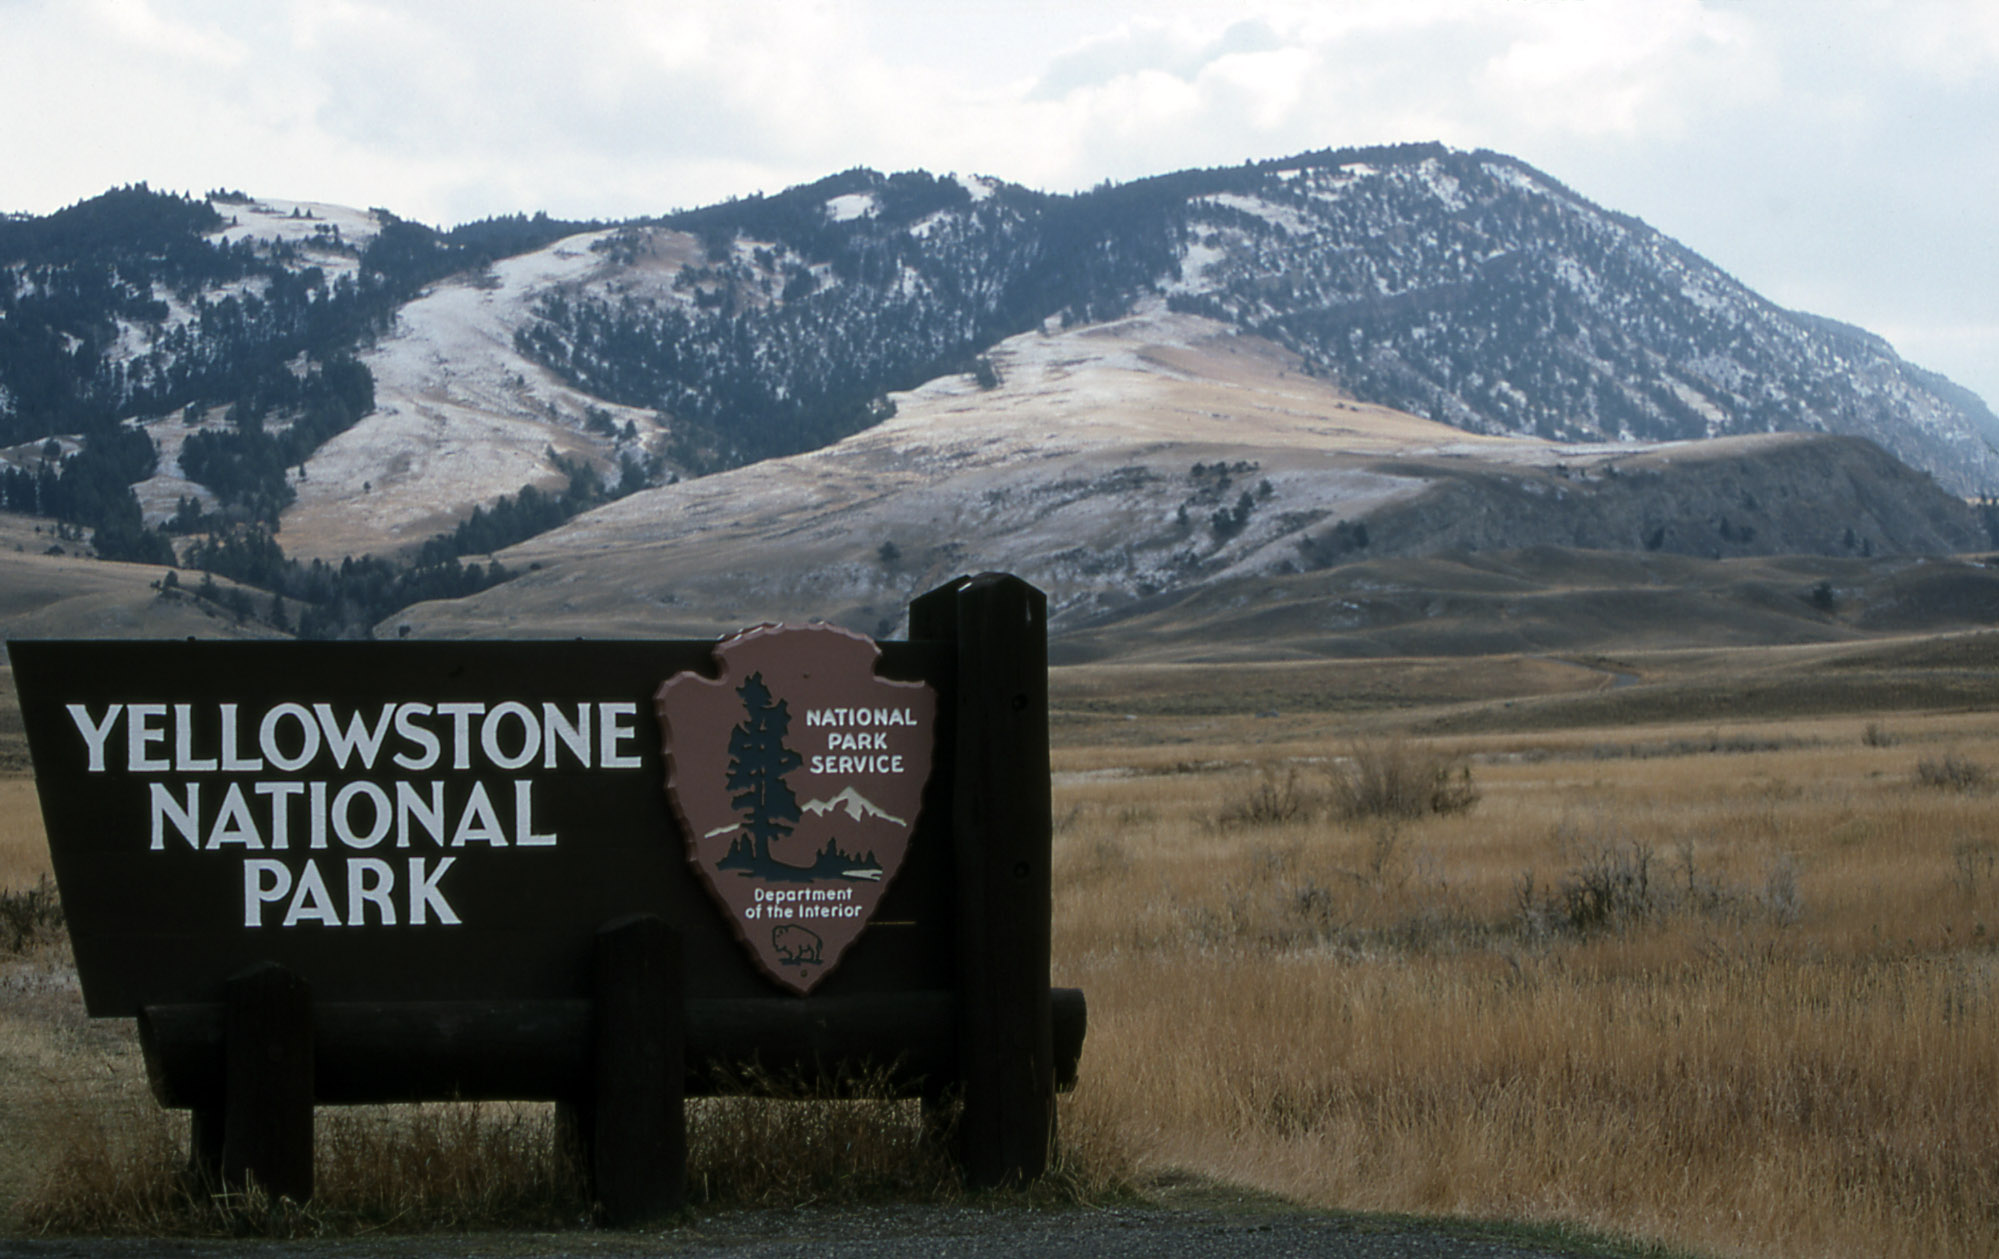 yellowstone national park single catholic girls North america tours find every north america tour here, along with terrific discounts on north america vacations including early-bird north america vacation specials and other deals on north america tour packages.